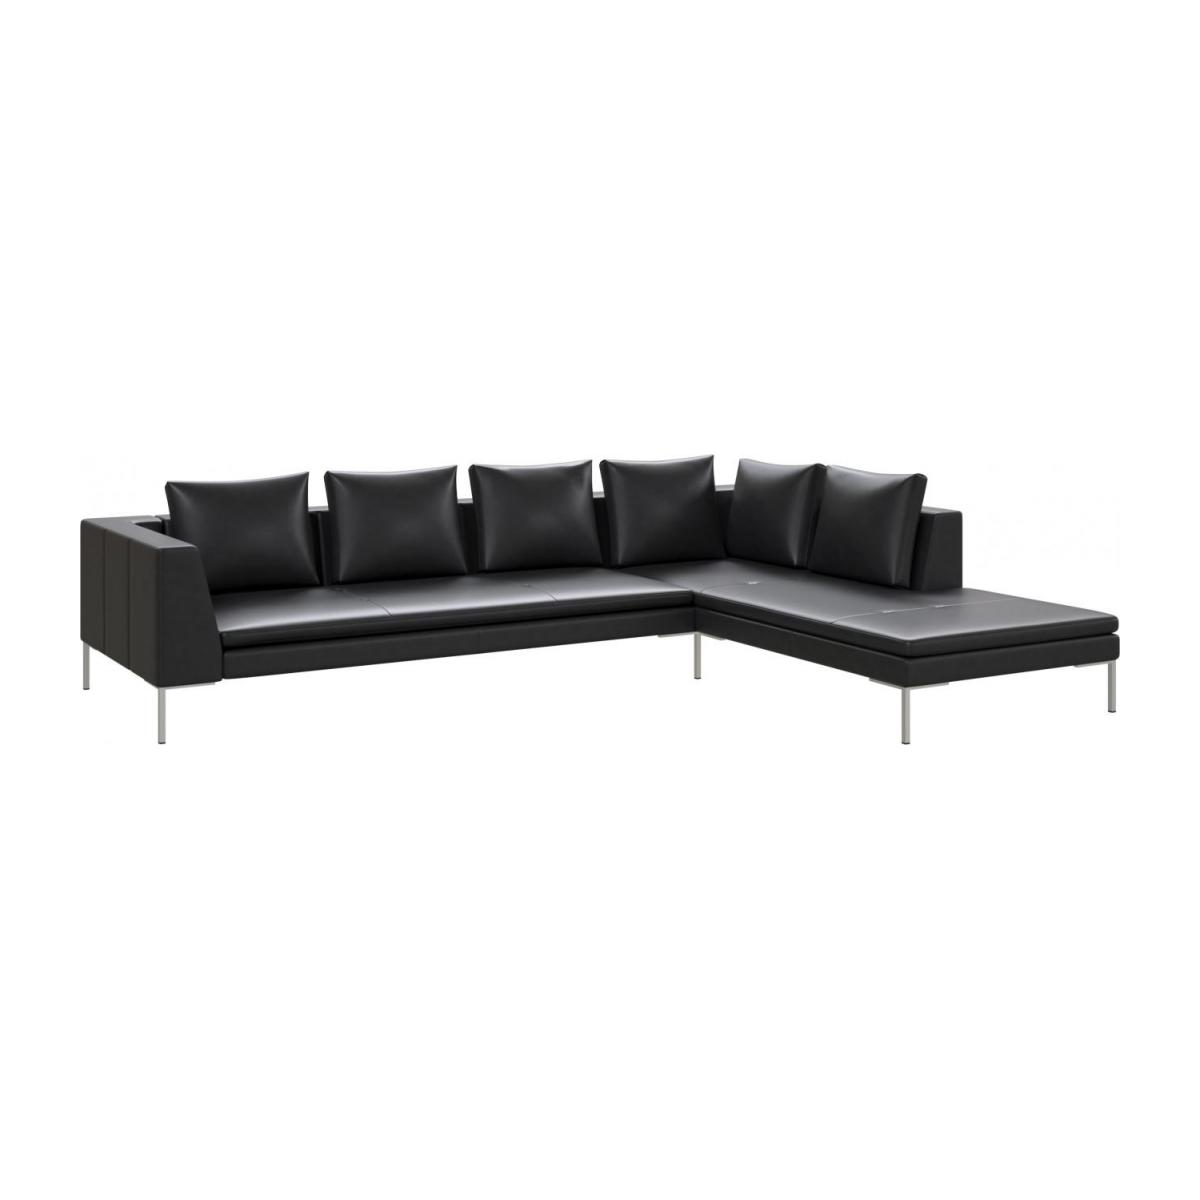 Montino 3 seater sofa with chaise longue on the right in Savoy semi-aniline  leather, platin black